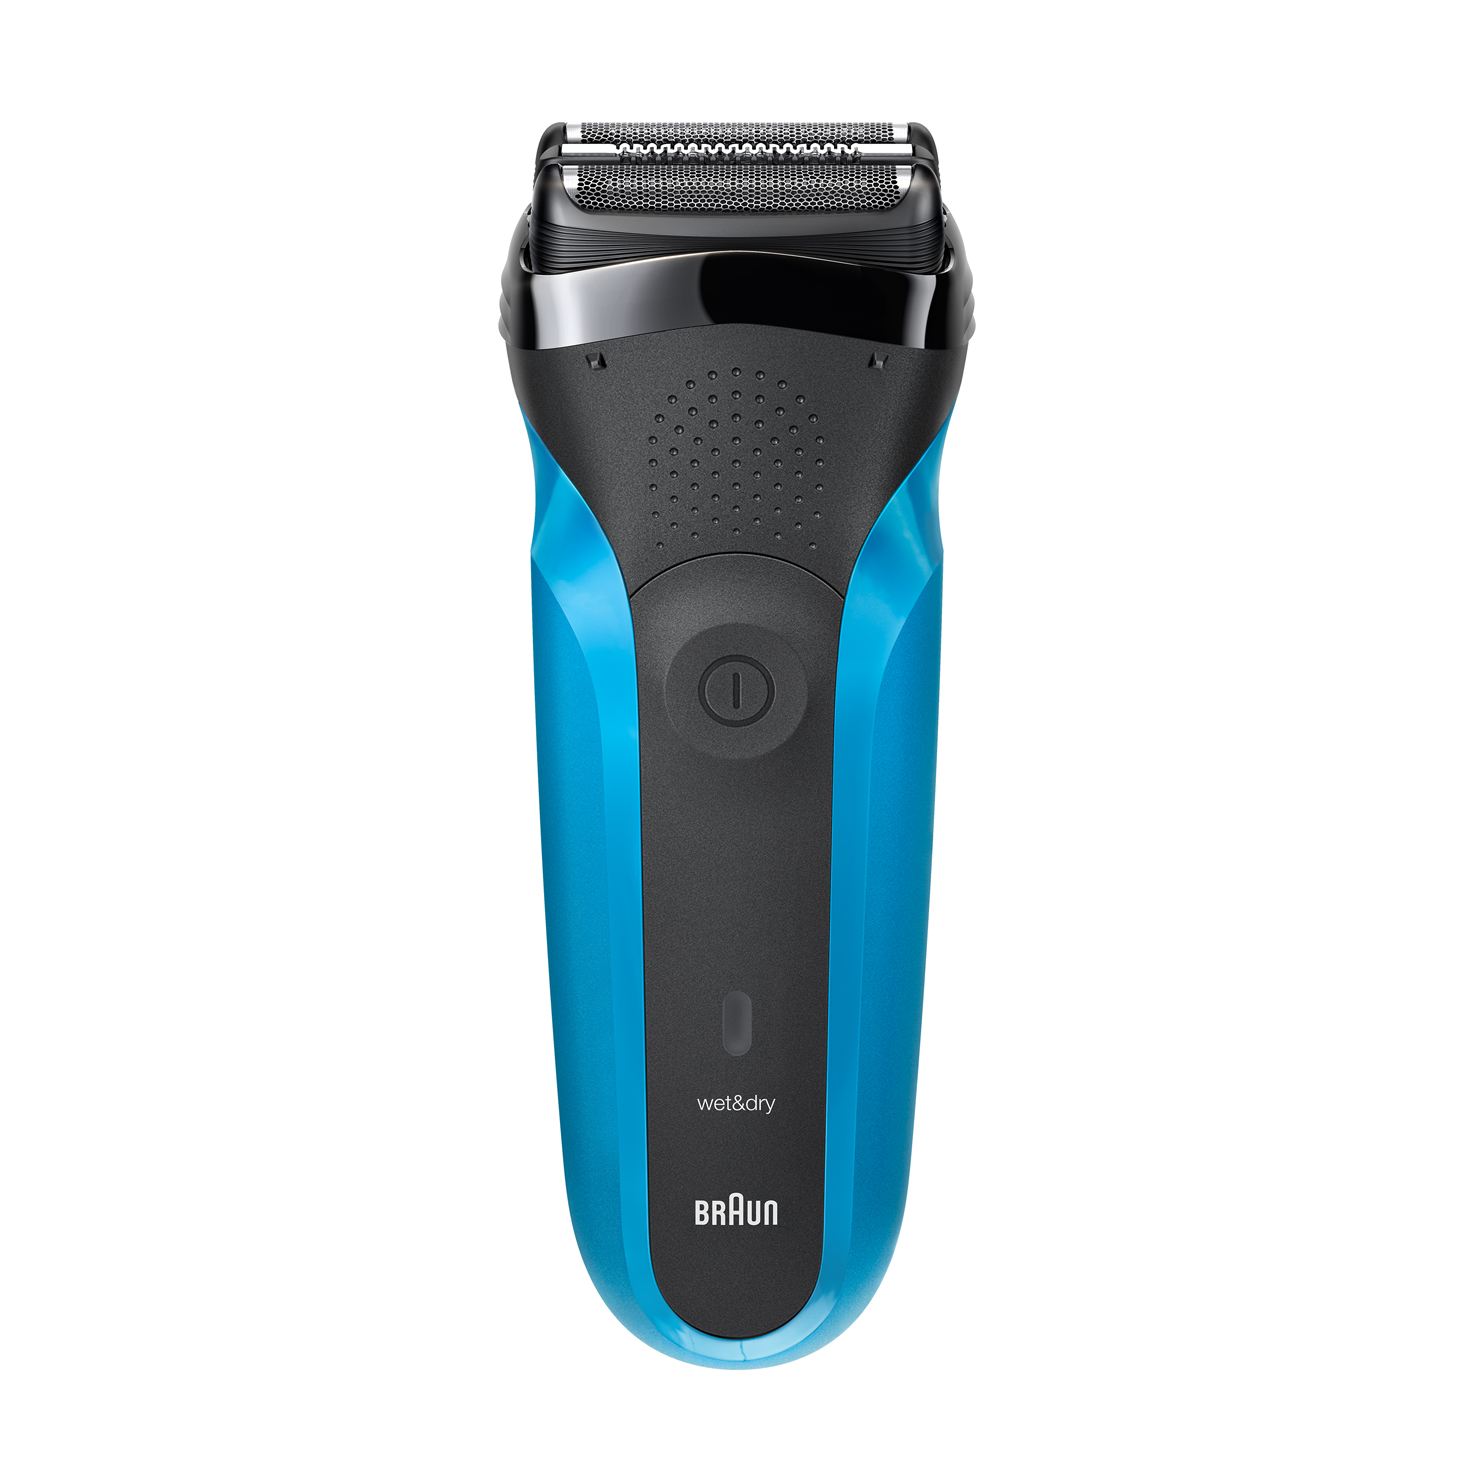 Series 3 310 shaver